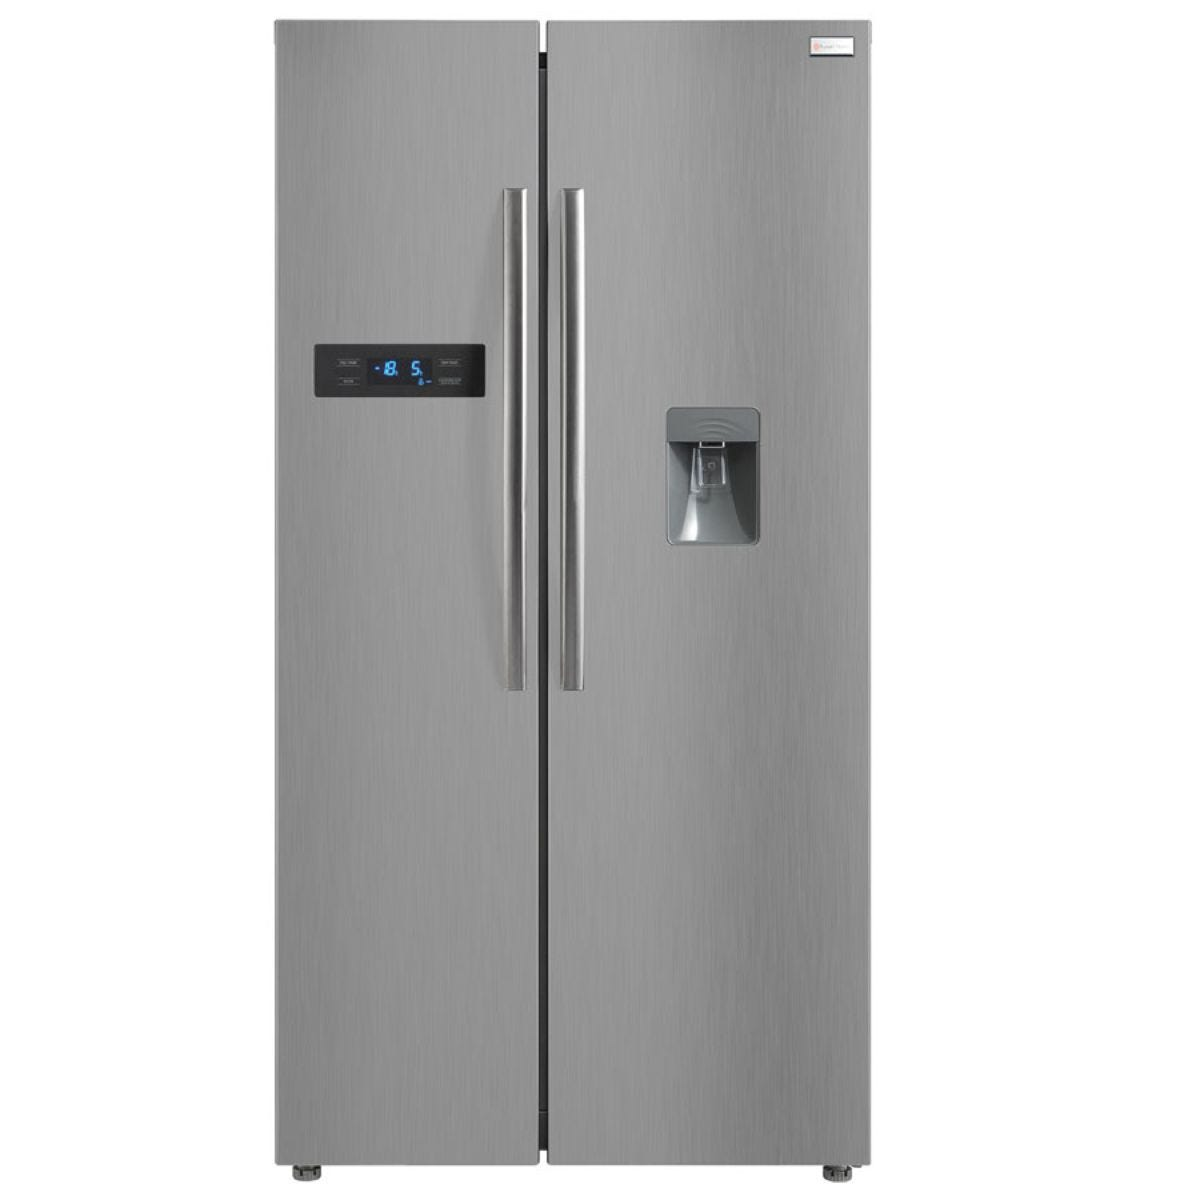 Russell Hobbs RH90FF176SS-WD 513L American Style Fridge Freezer with Water Dispenser - Stainless Steel